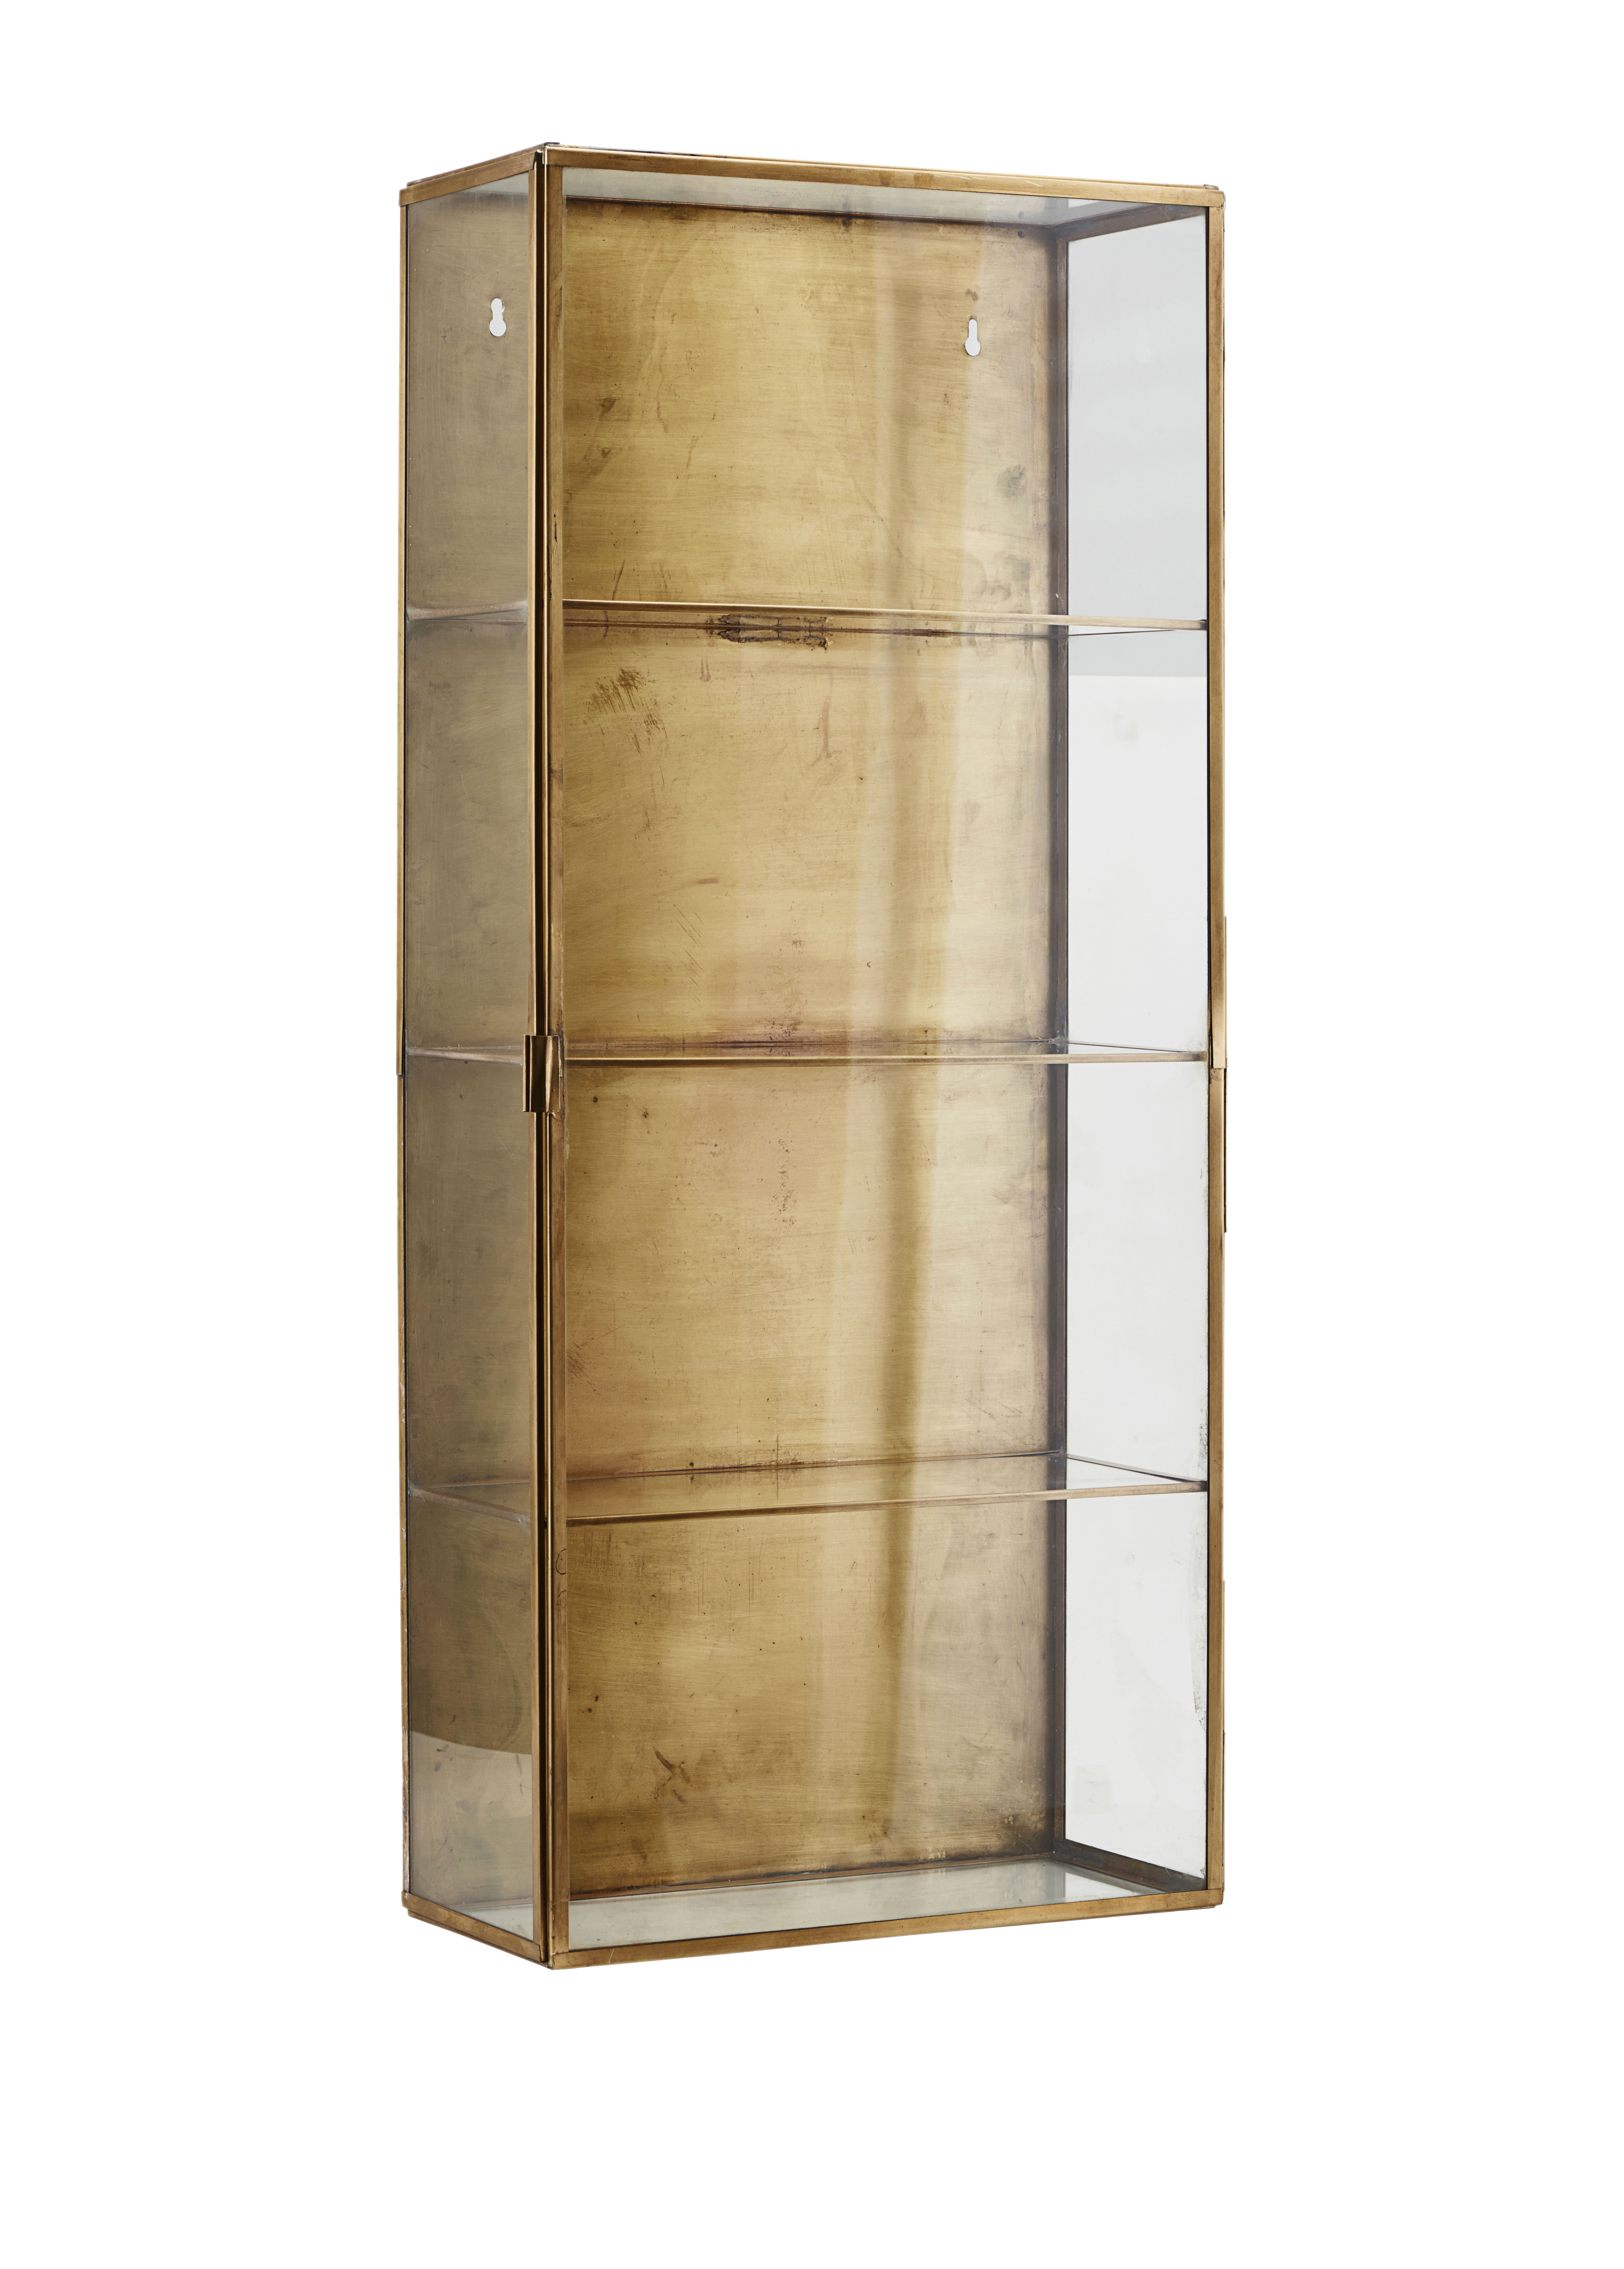 Furniture - Bookcases & Bookshelves - Cabinet Large Wall storage - / Showcase - L 35 x H 80 cm by House Doctor - Large / Brass - Brass, Glass